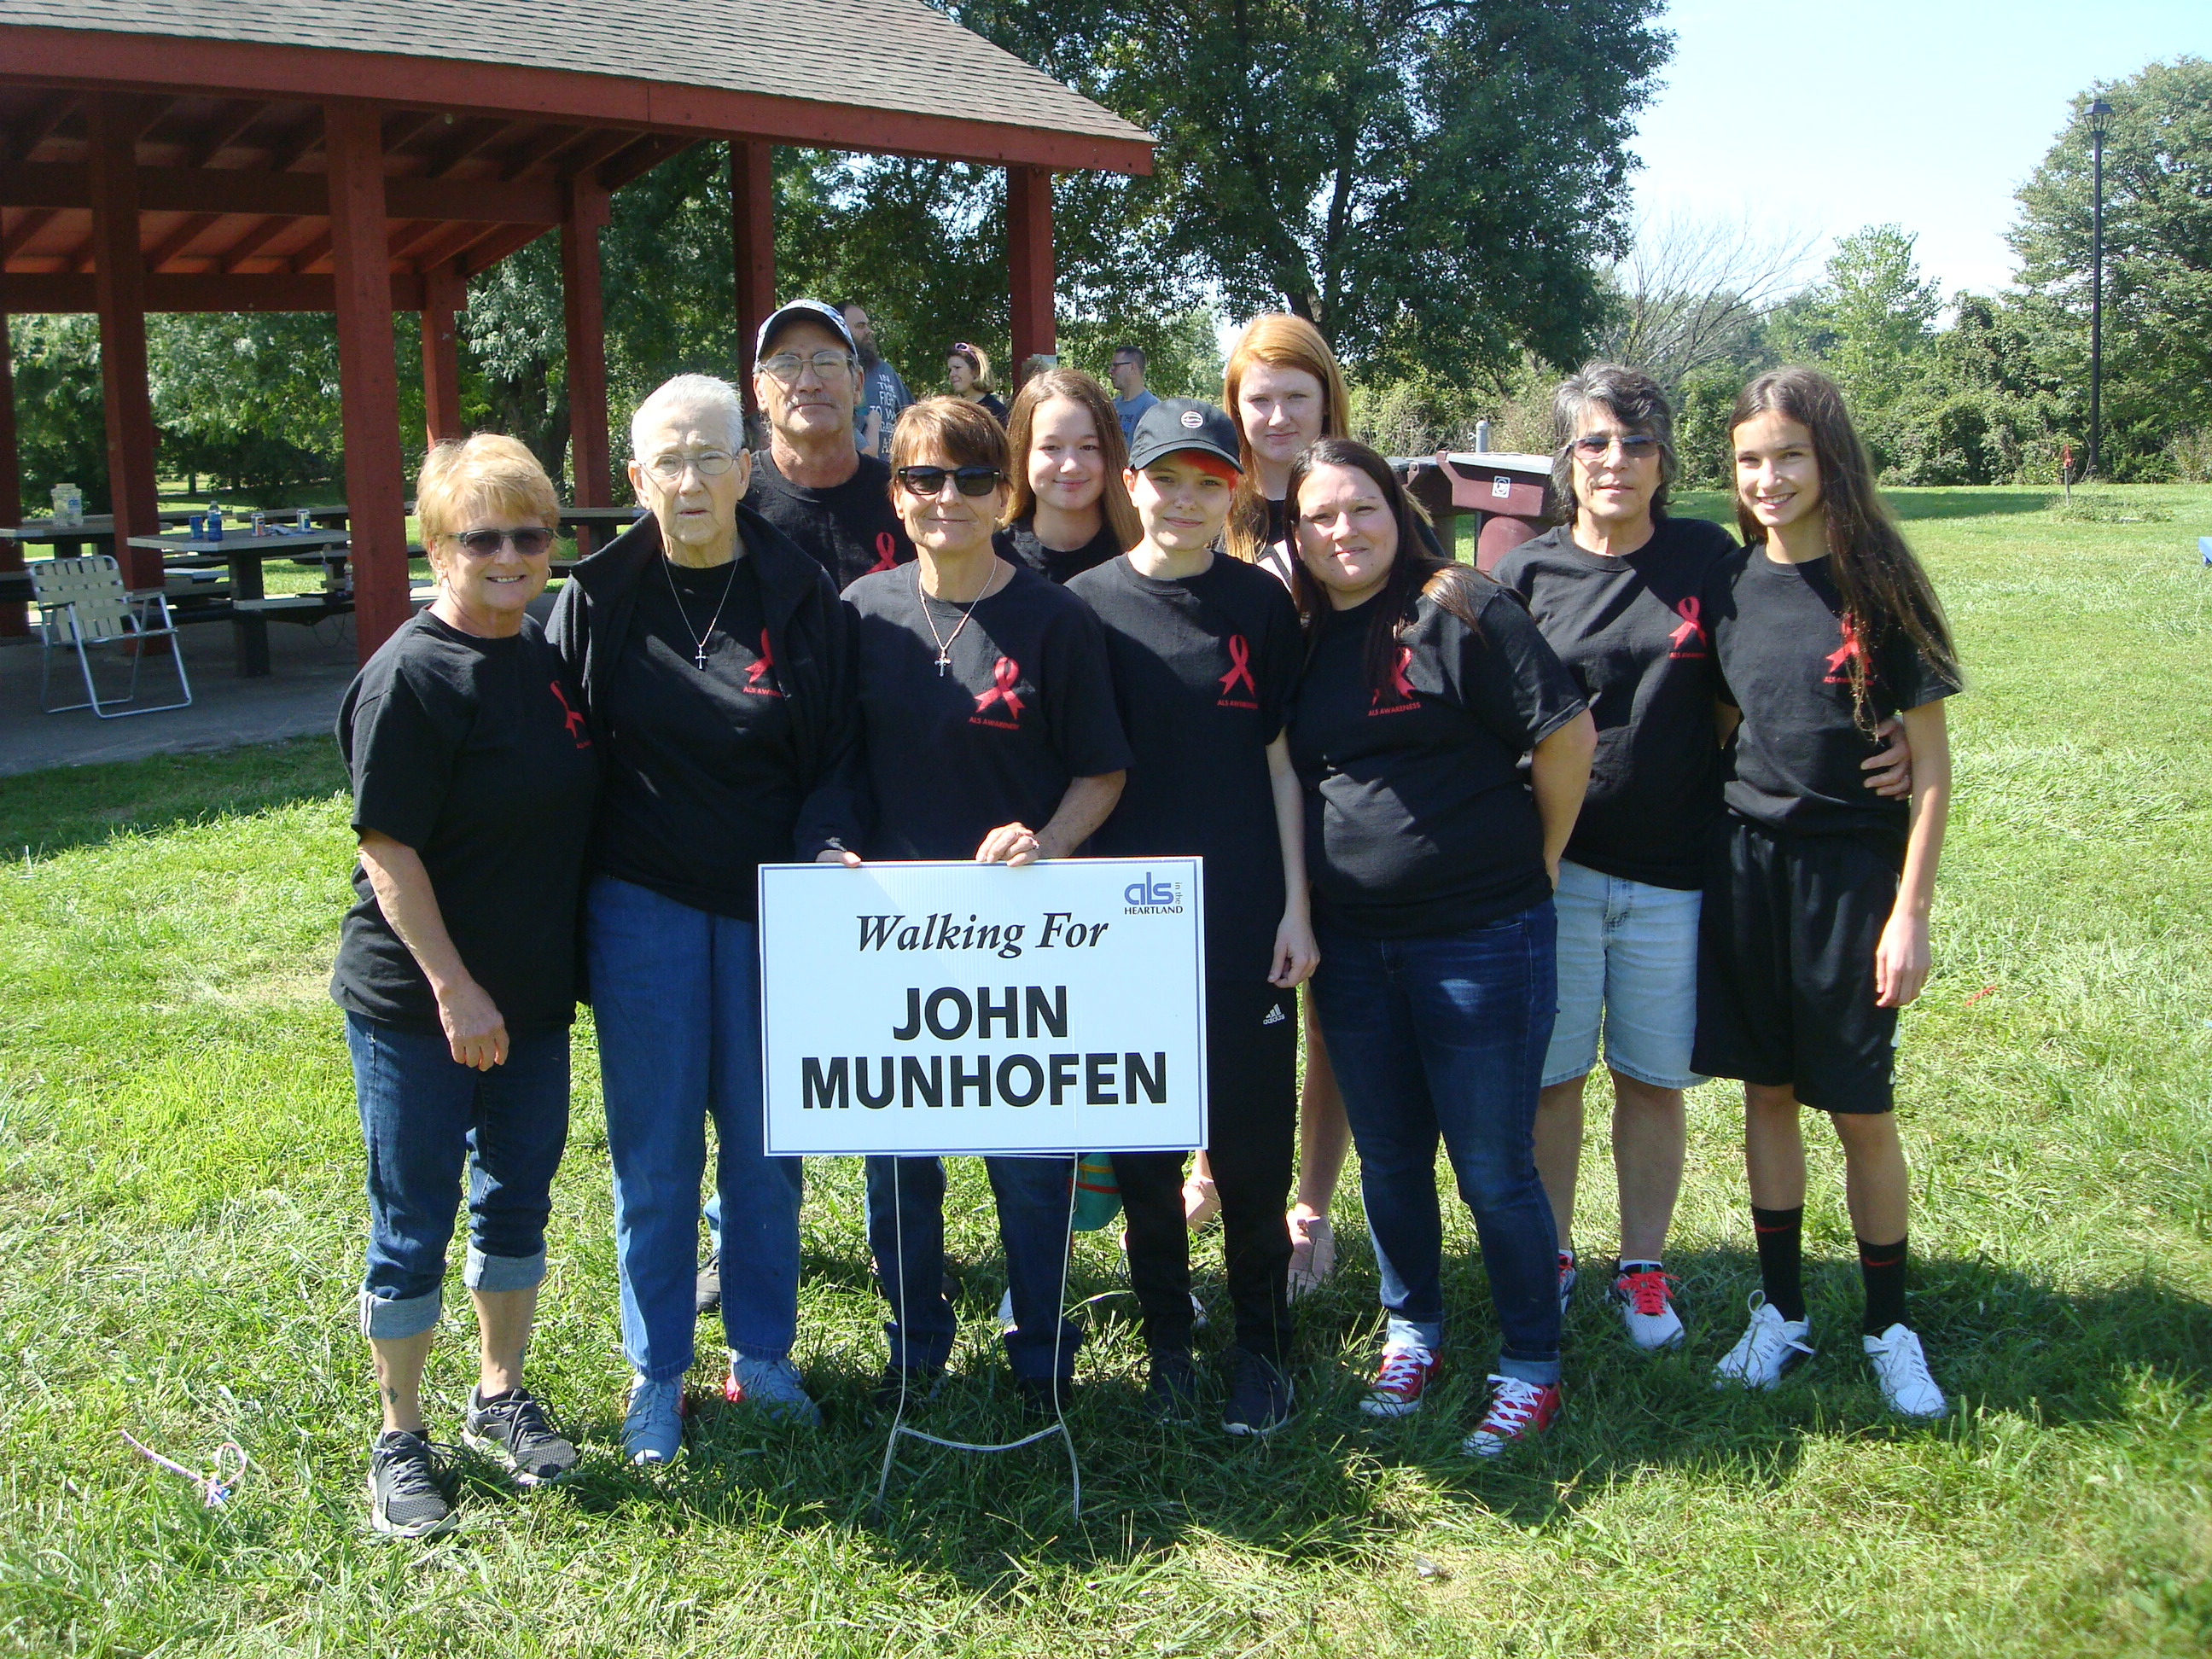 South Sioux City/Dakota County Walk 2018